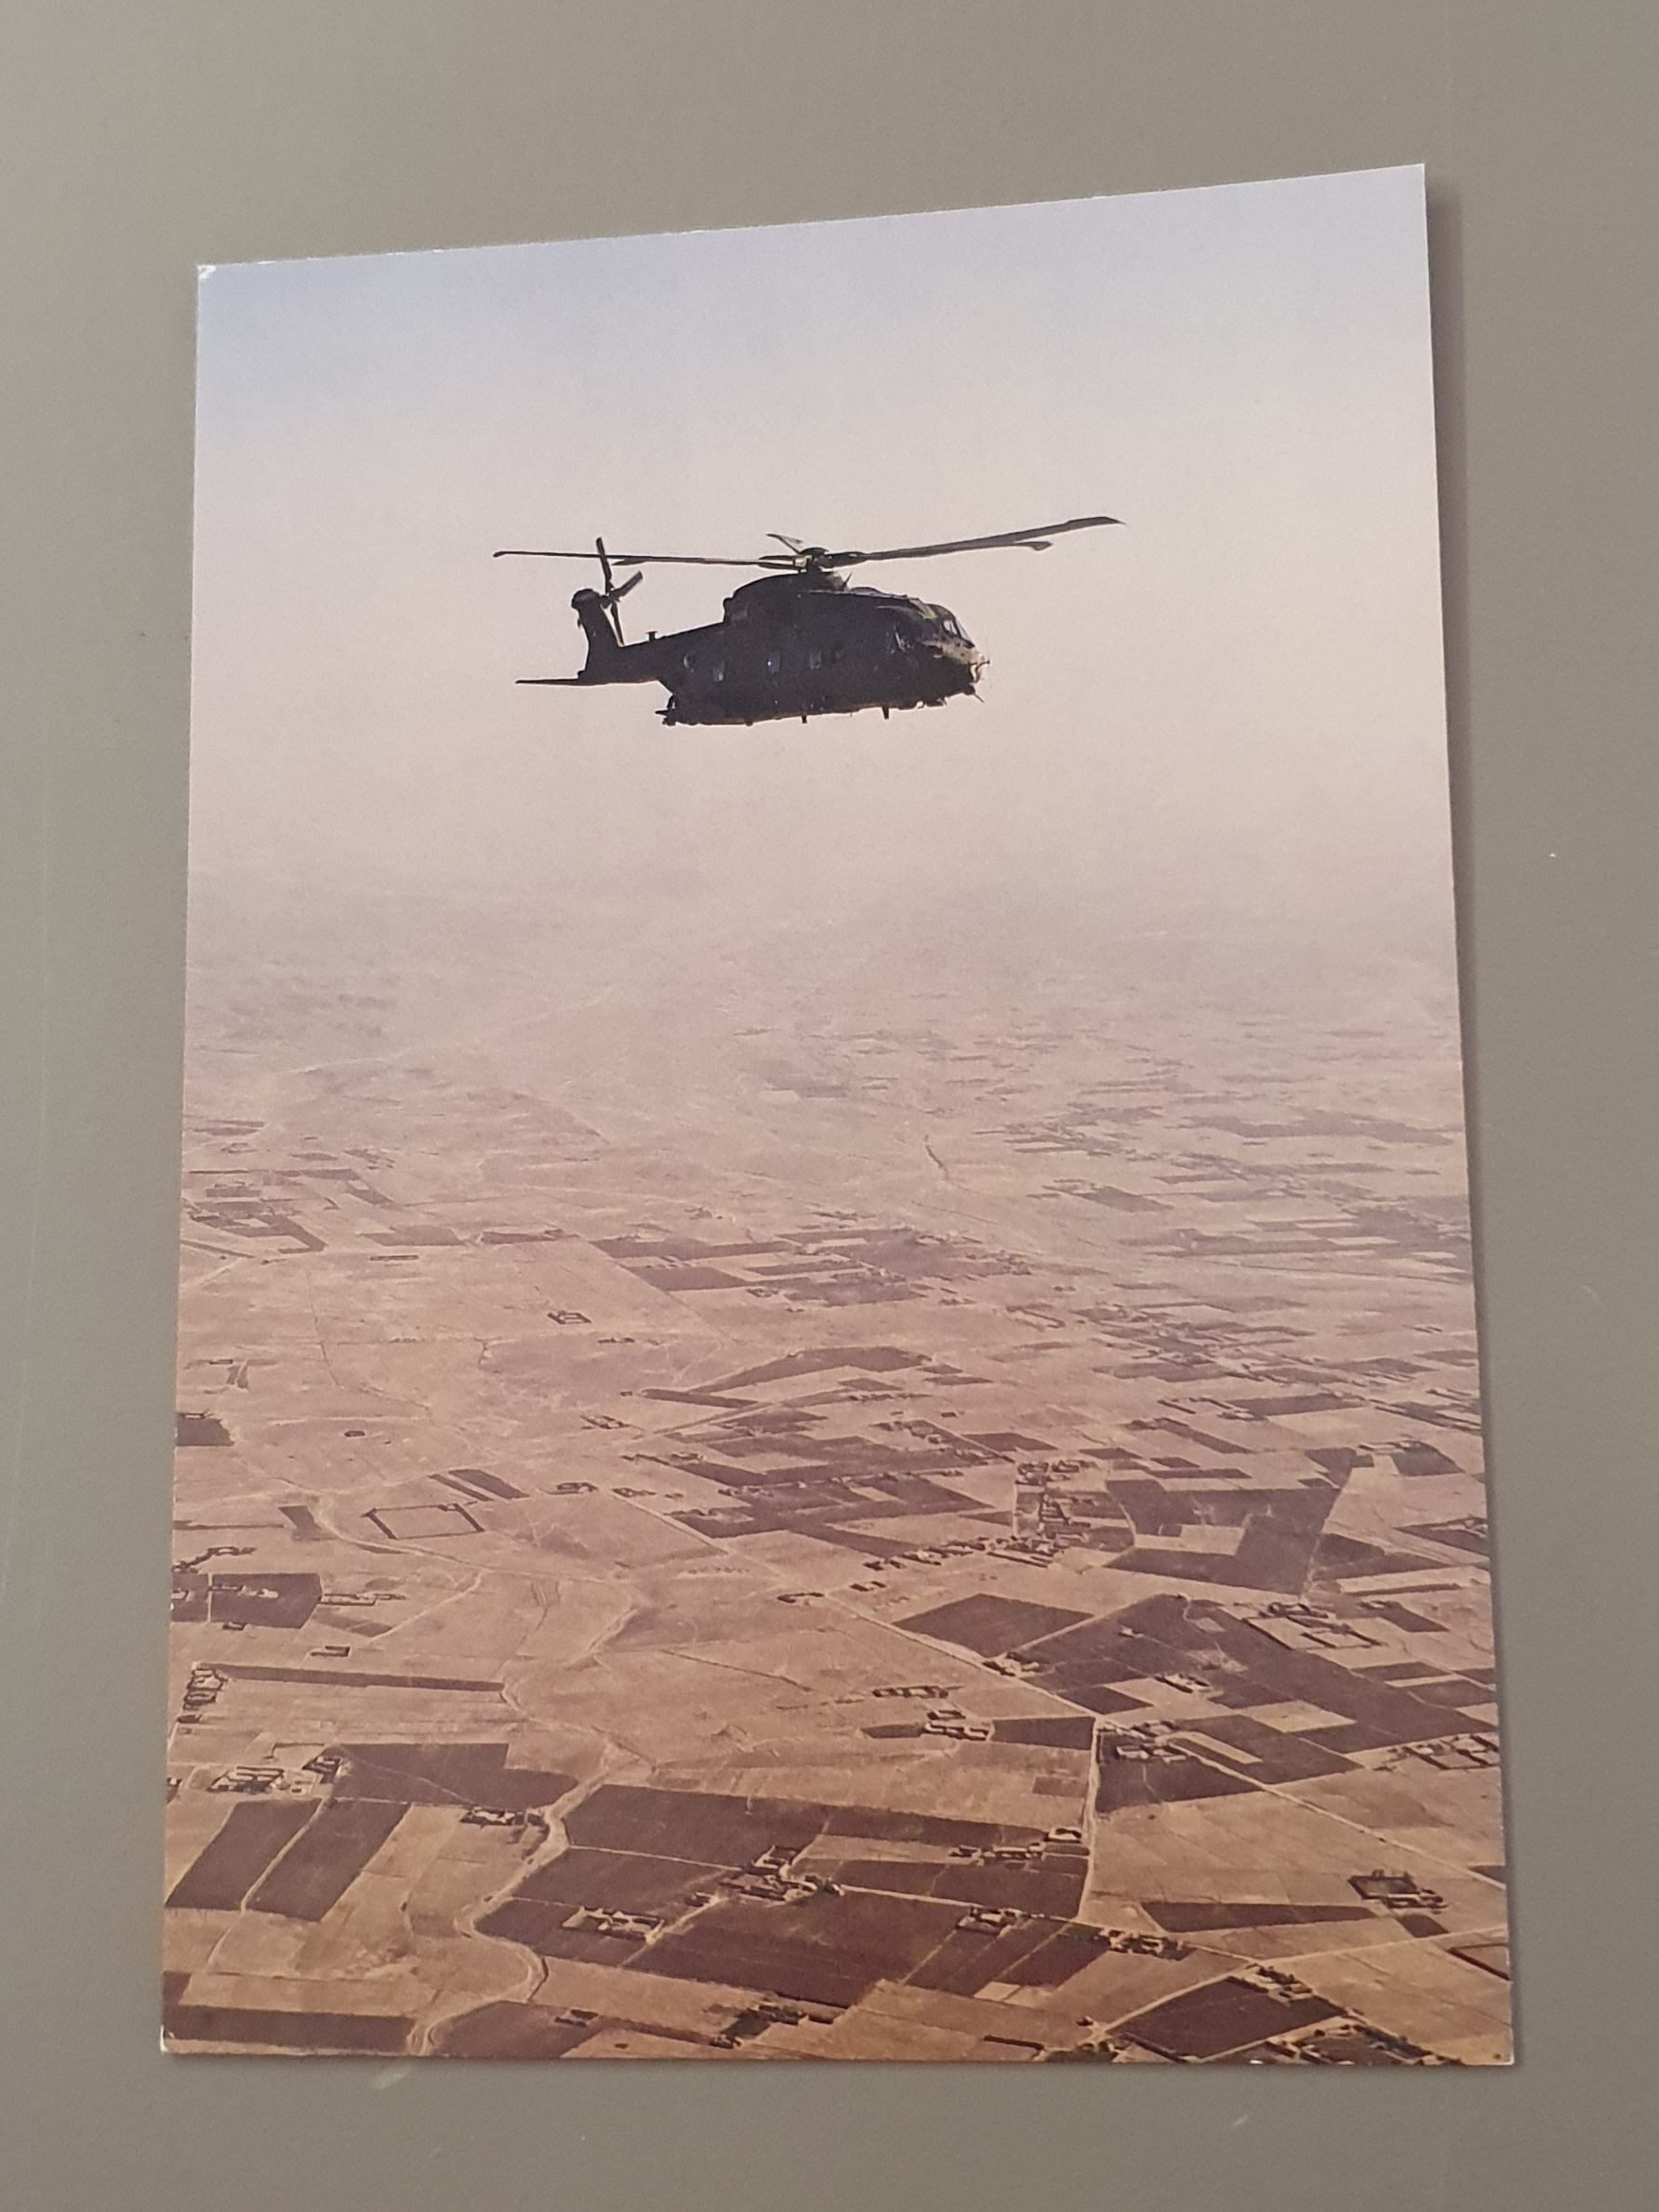 Helicopter flying over Helmand, Afghanistan postcard